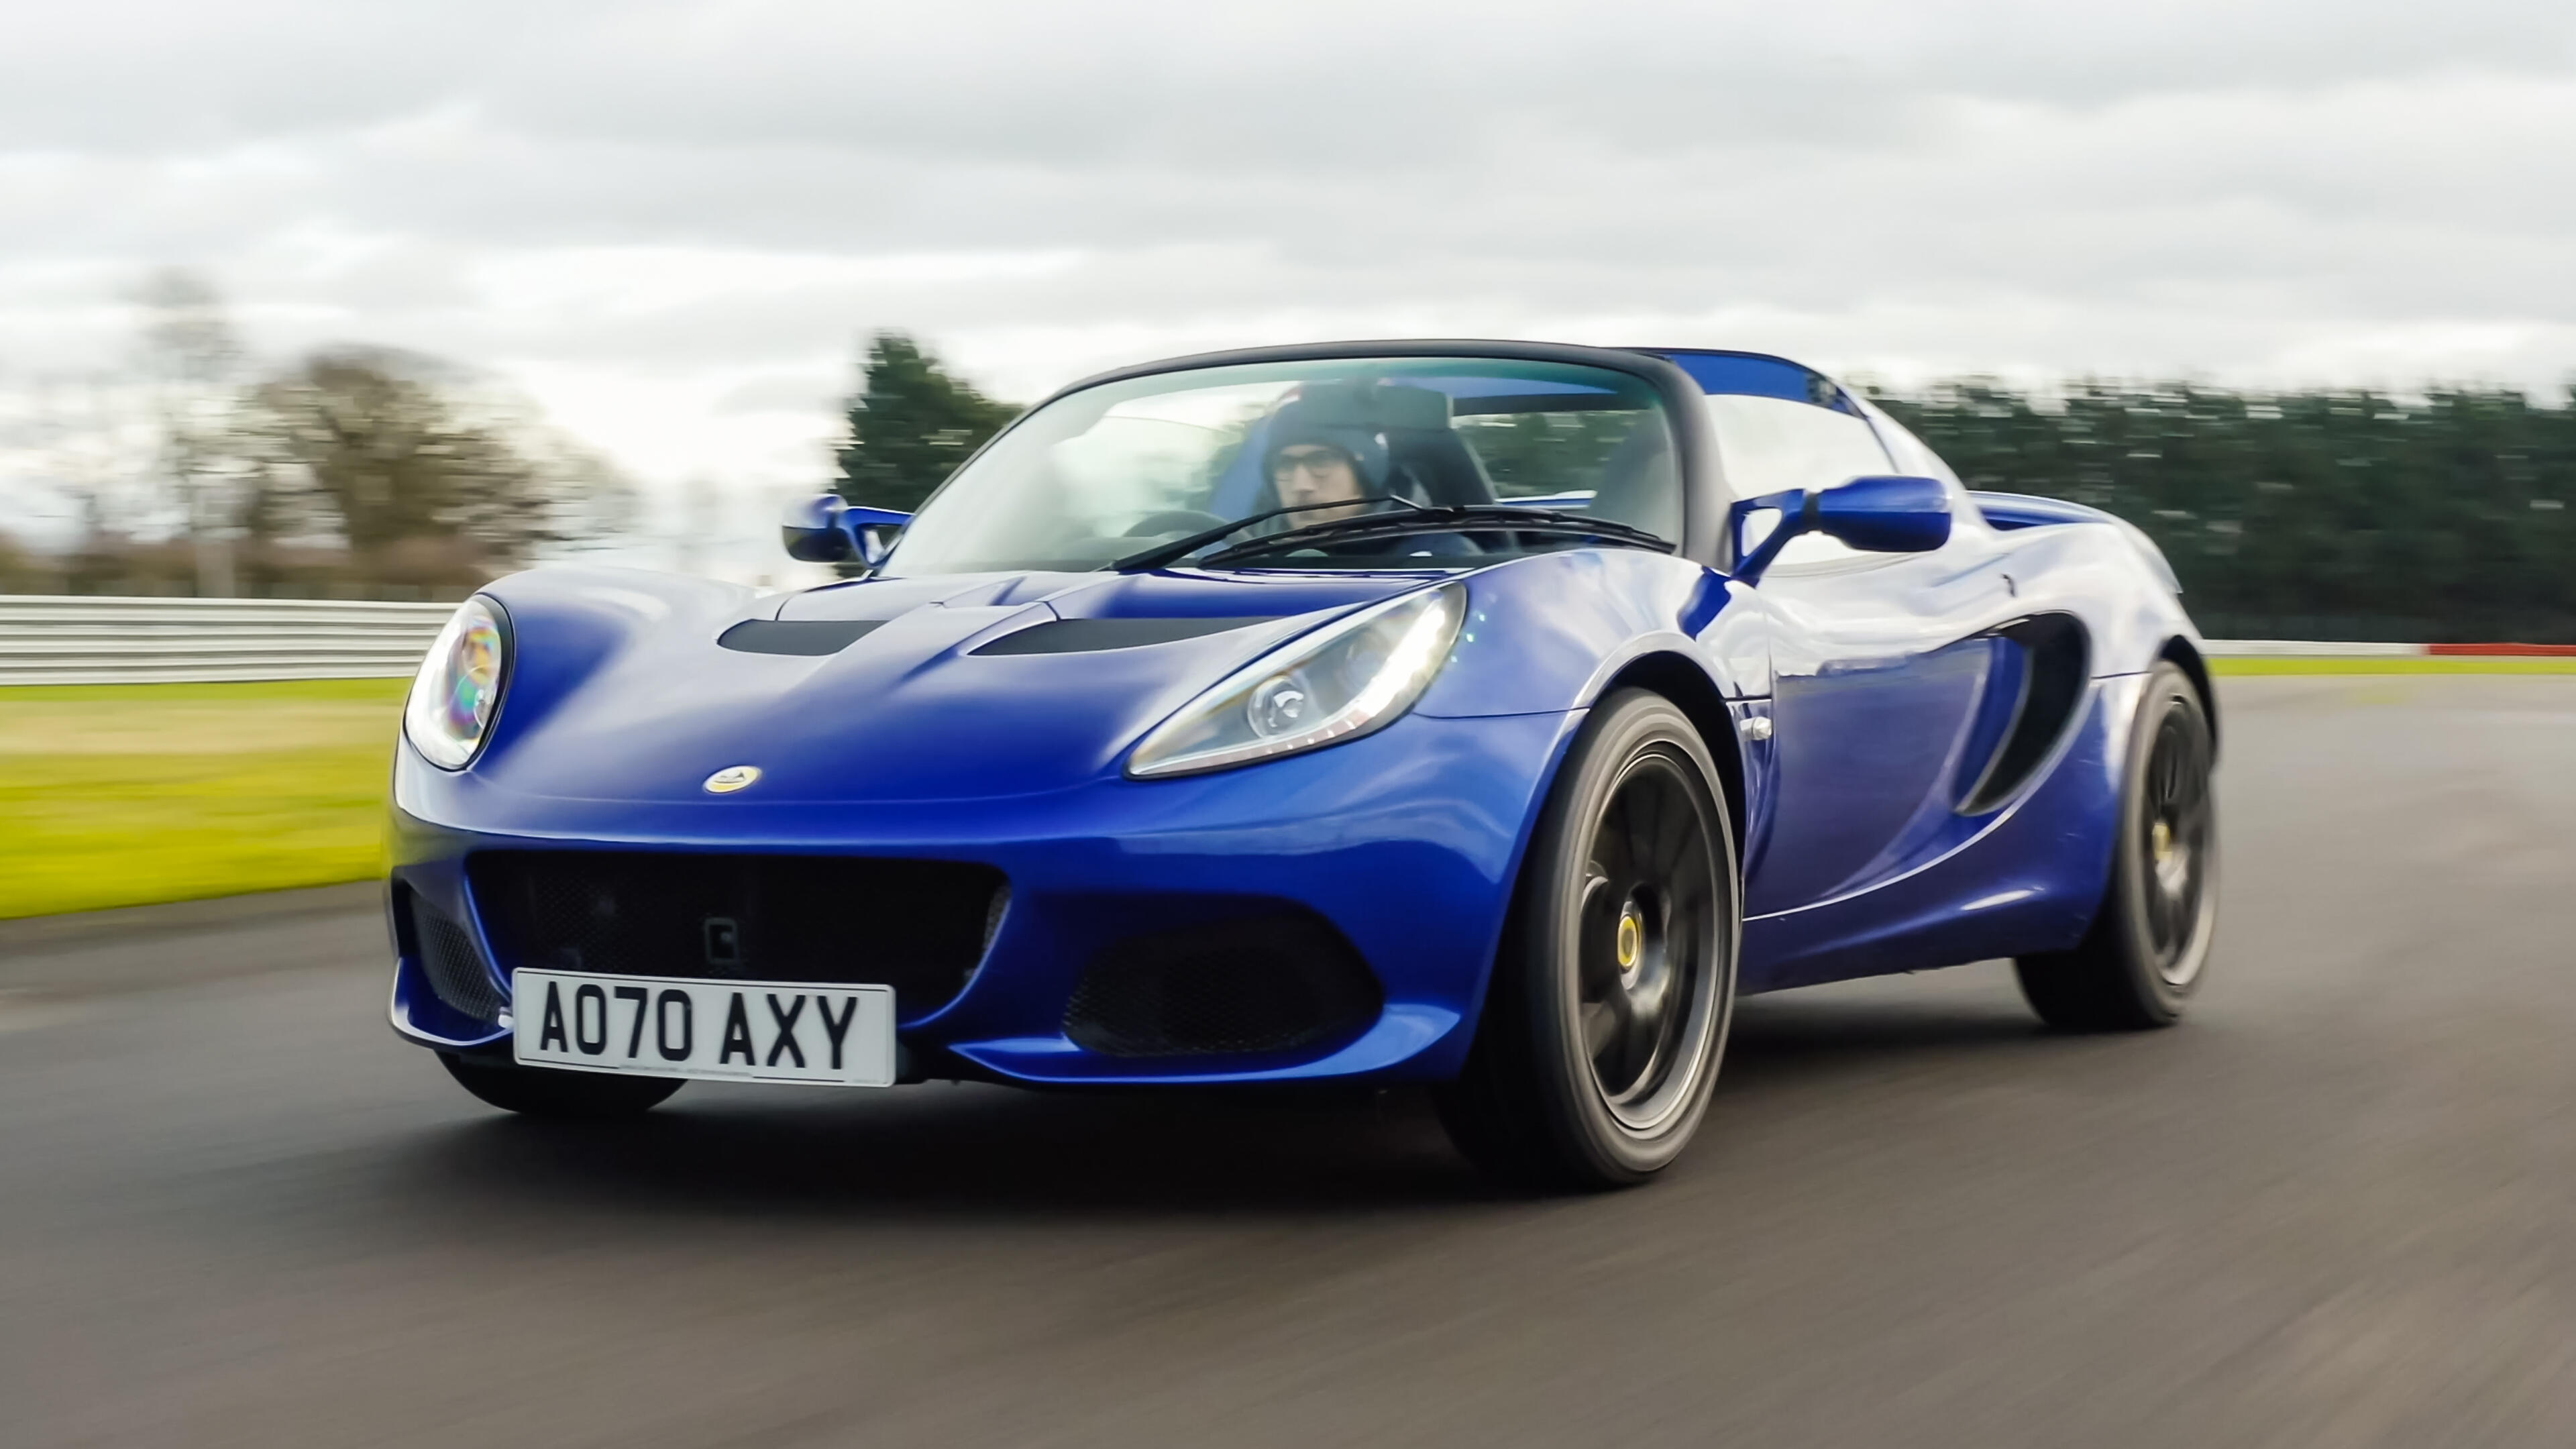 Video: The Lotus Elise Sport 240 shows us the 25 year old recipe still works